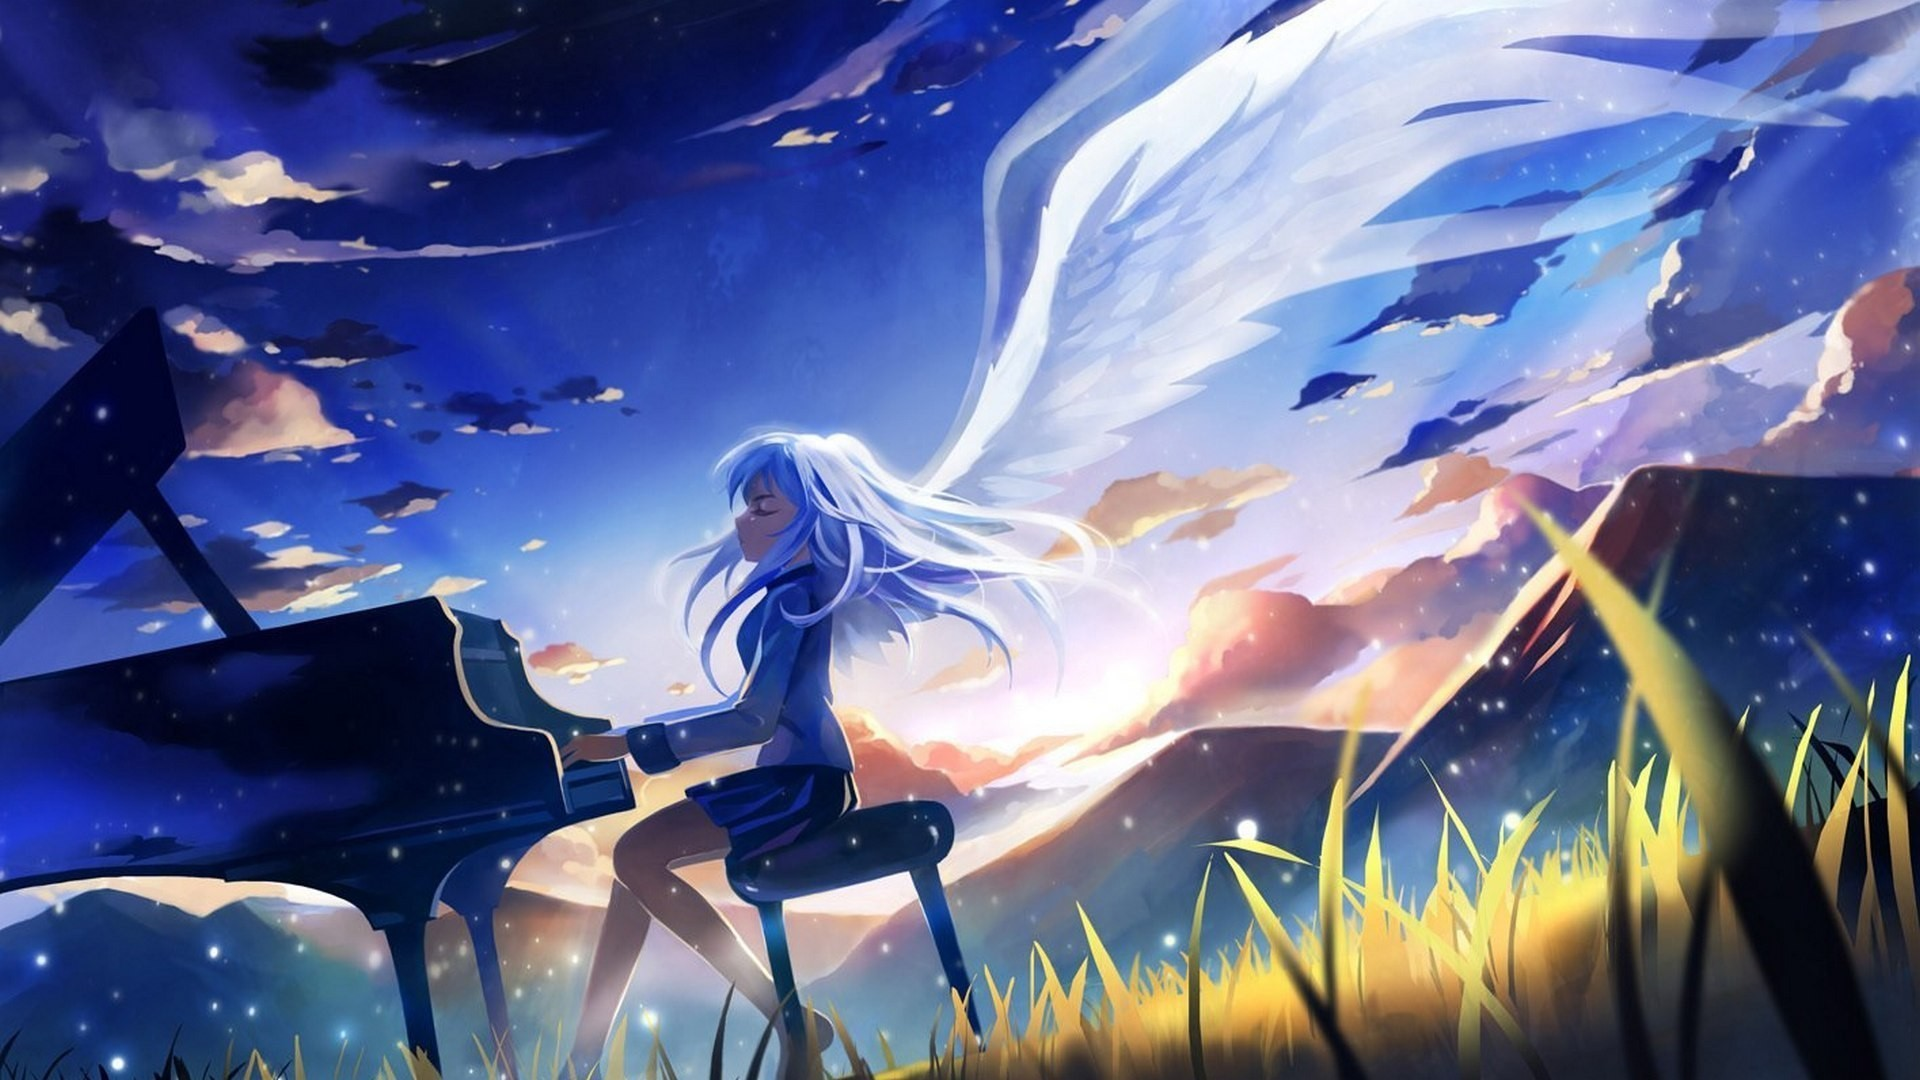 Res: 1920x1080, Anime Music Wallpaper Widescreen